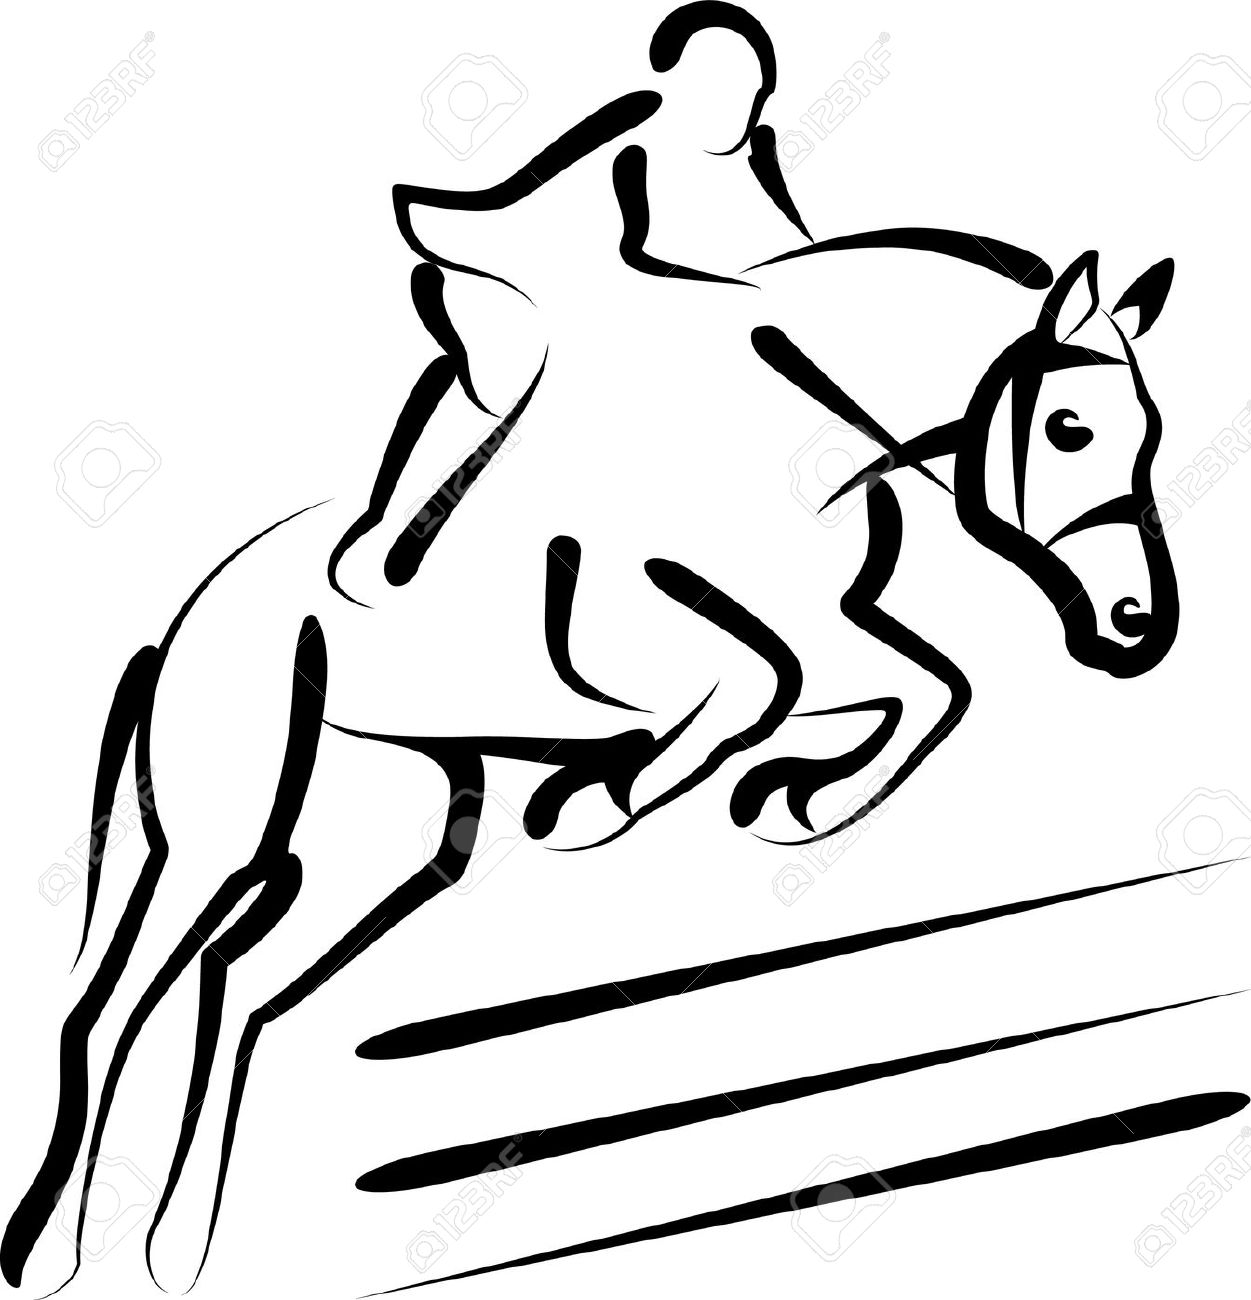 1251x1300 Horse Riding Clipart Horse Jumping